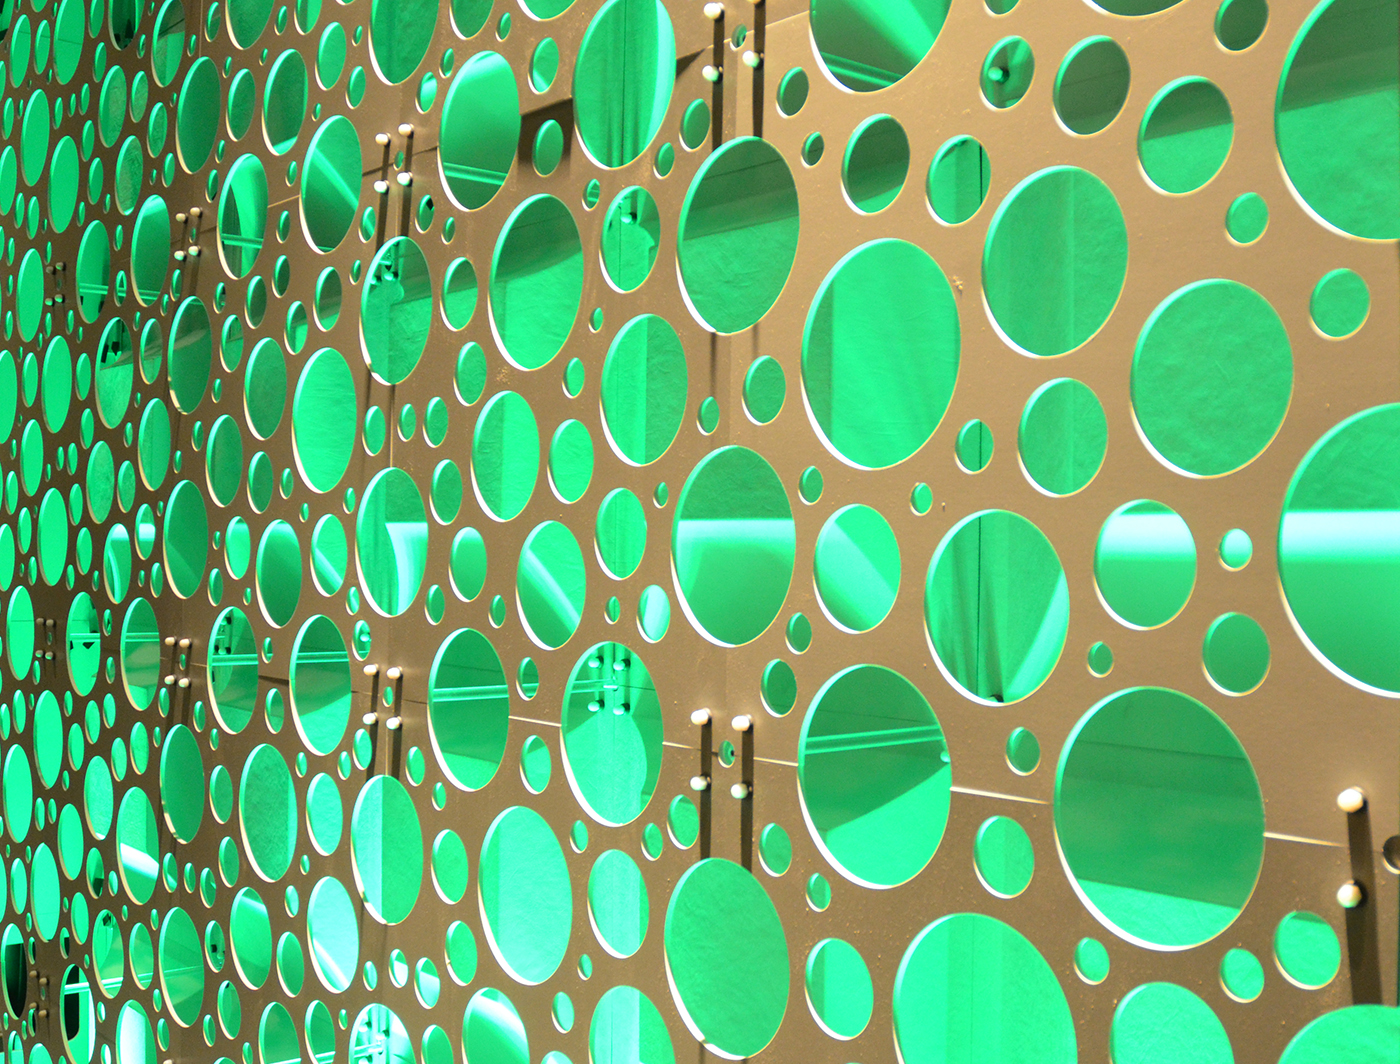 FIZZ AND CHICLET PANELS FORM A SUPERWALL